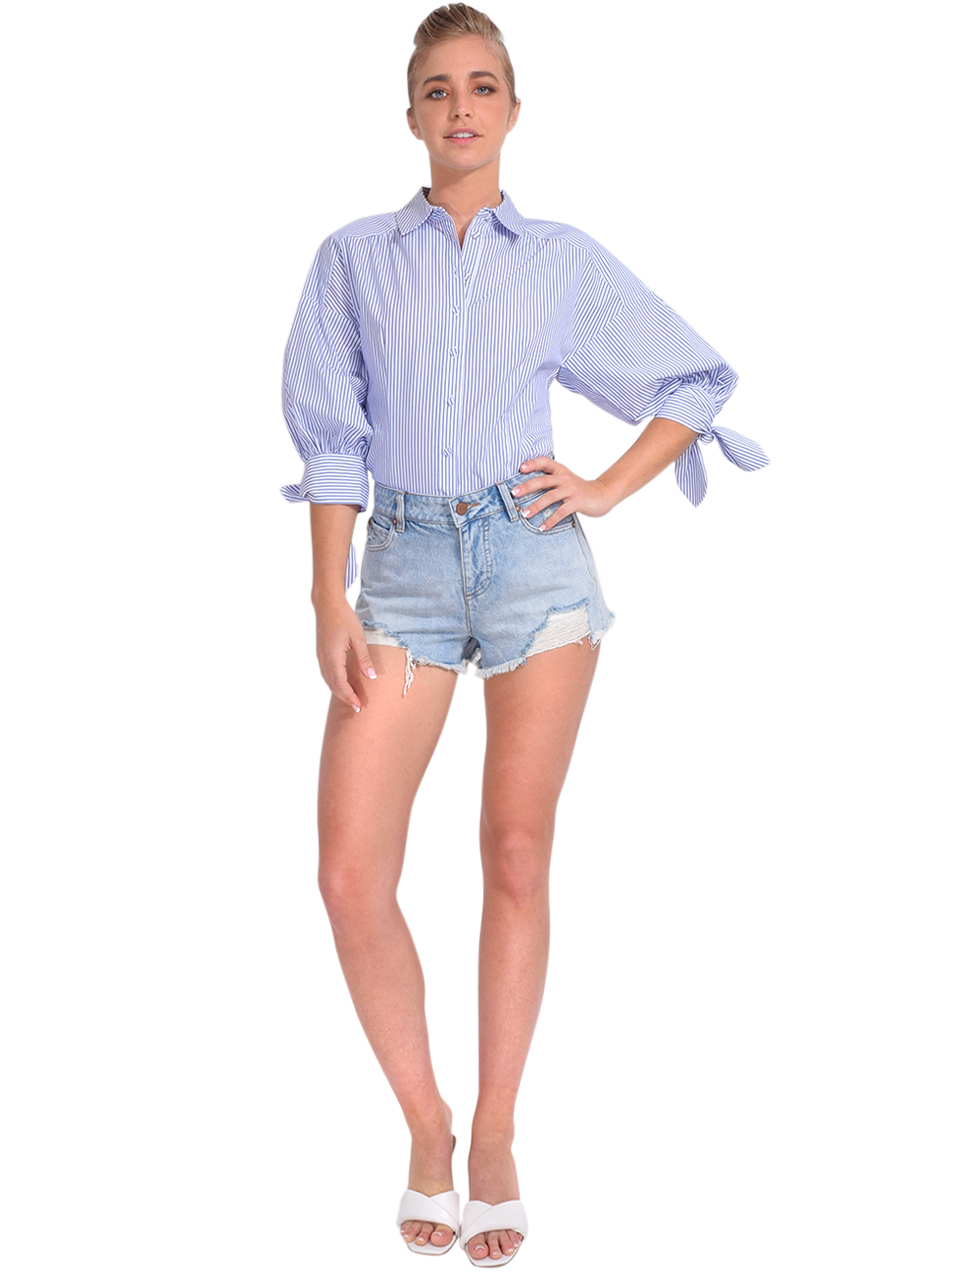 ALICE + OLIVIA Amazing High Rise Vintage Short Full Outfit